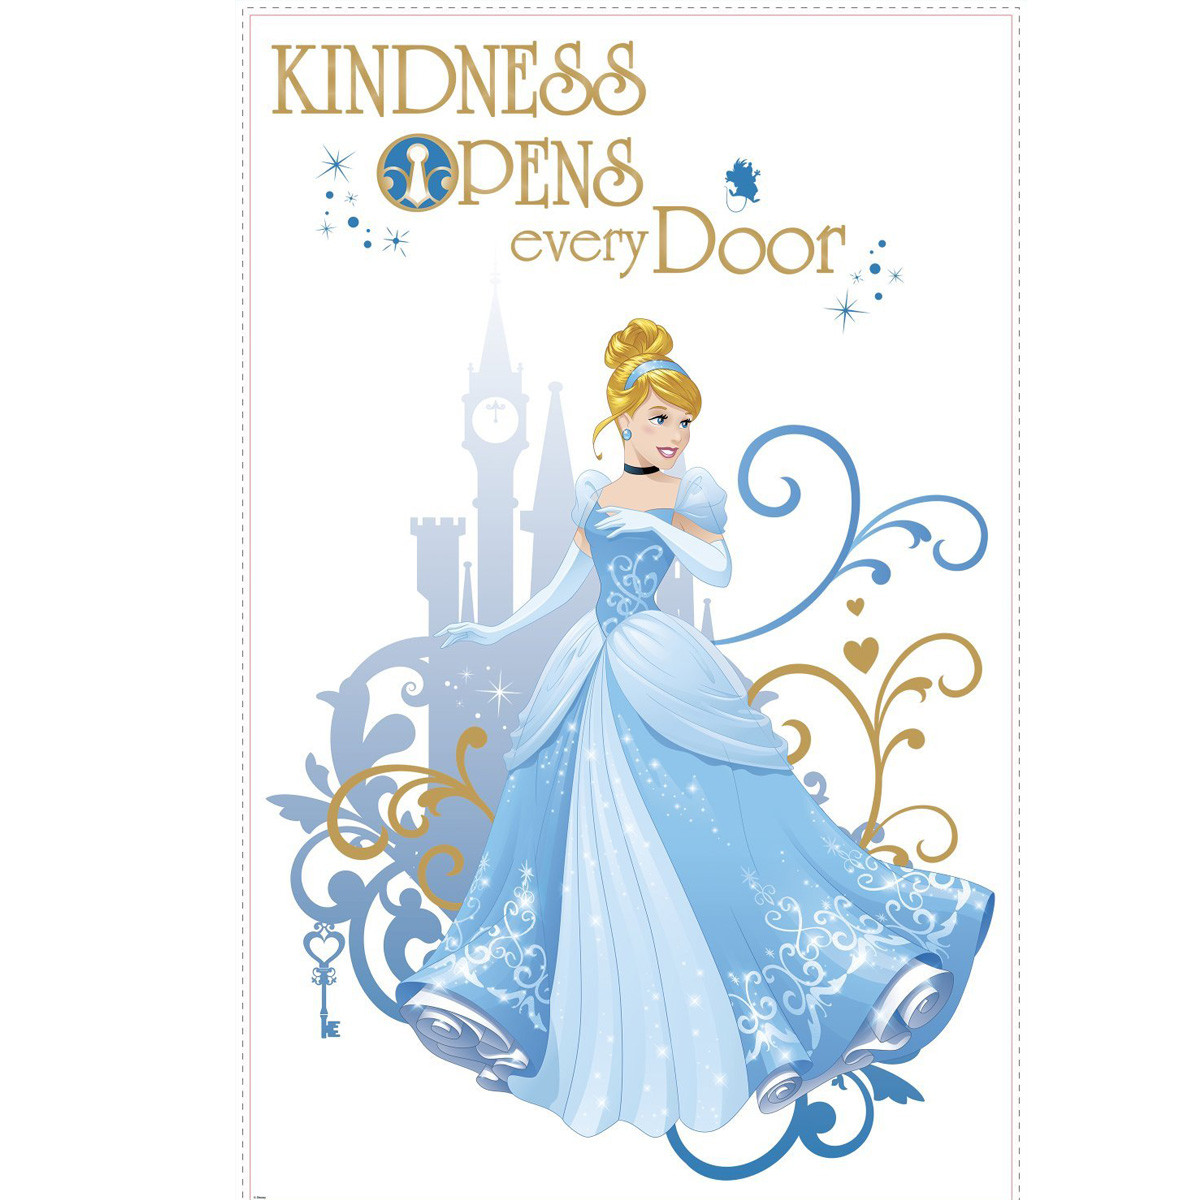 Sticker géant Kindness Princesse Cendrillon Disney